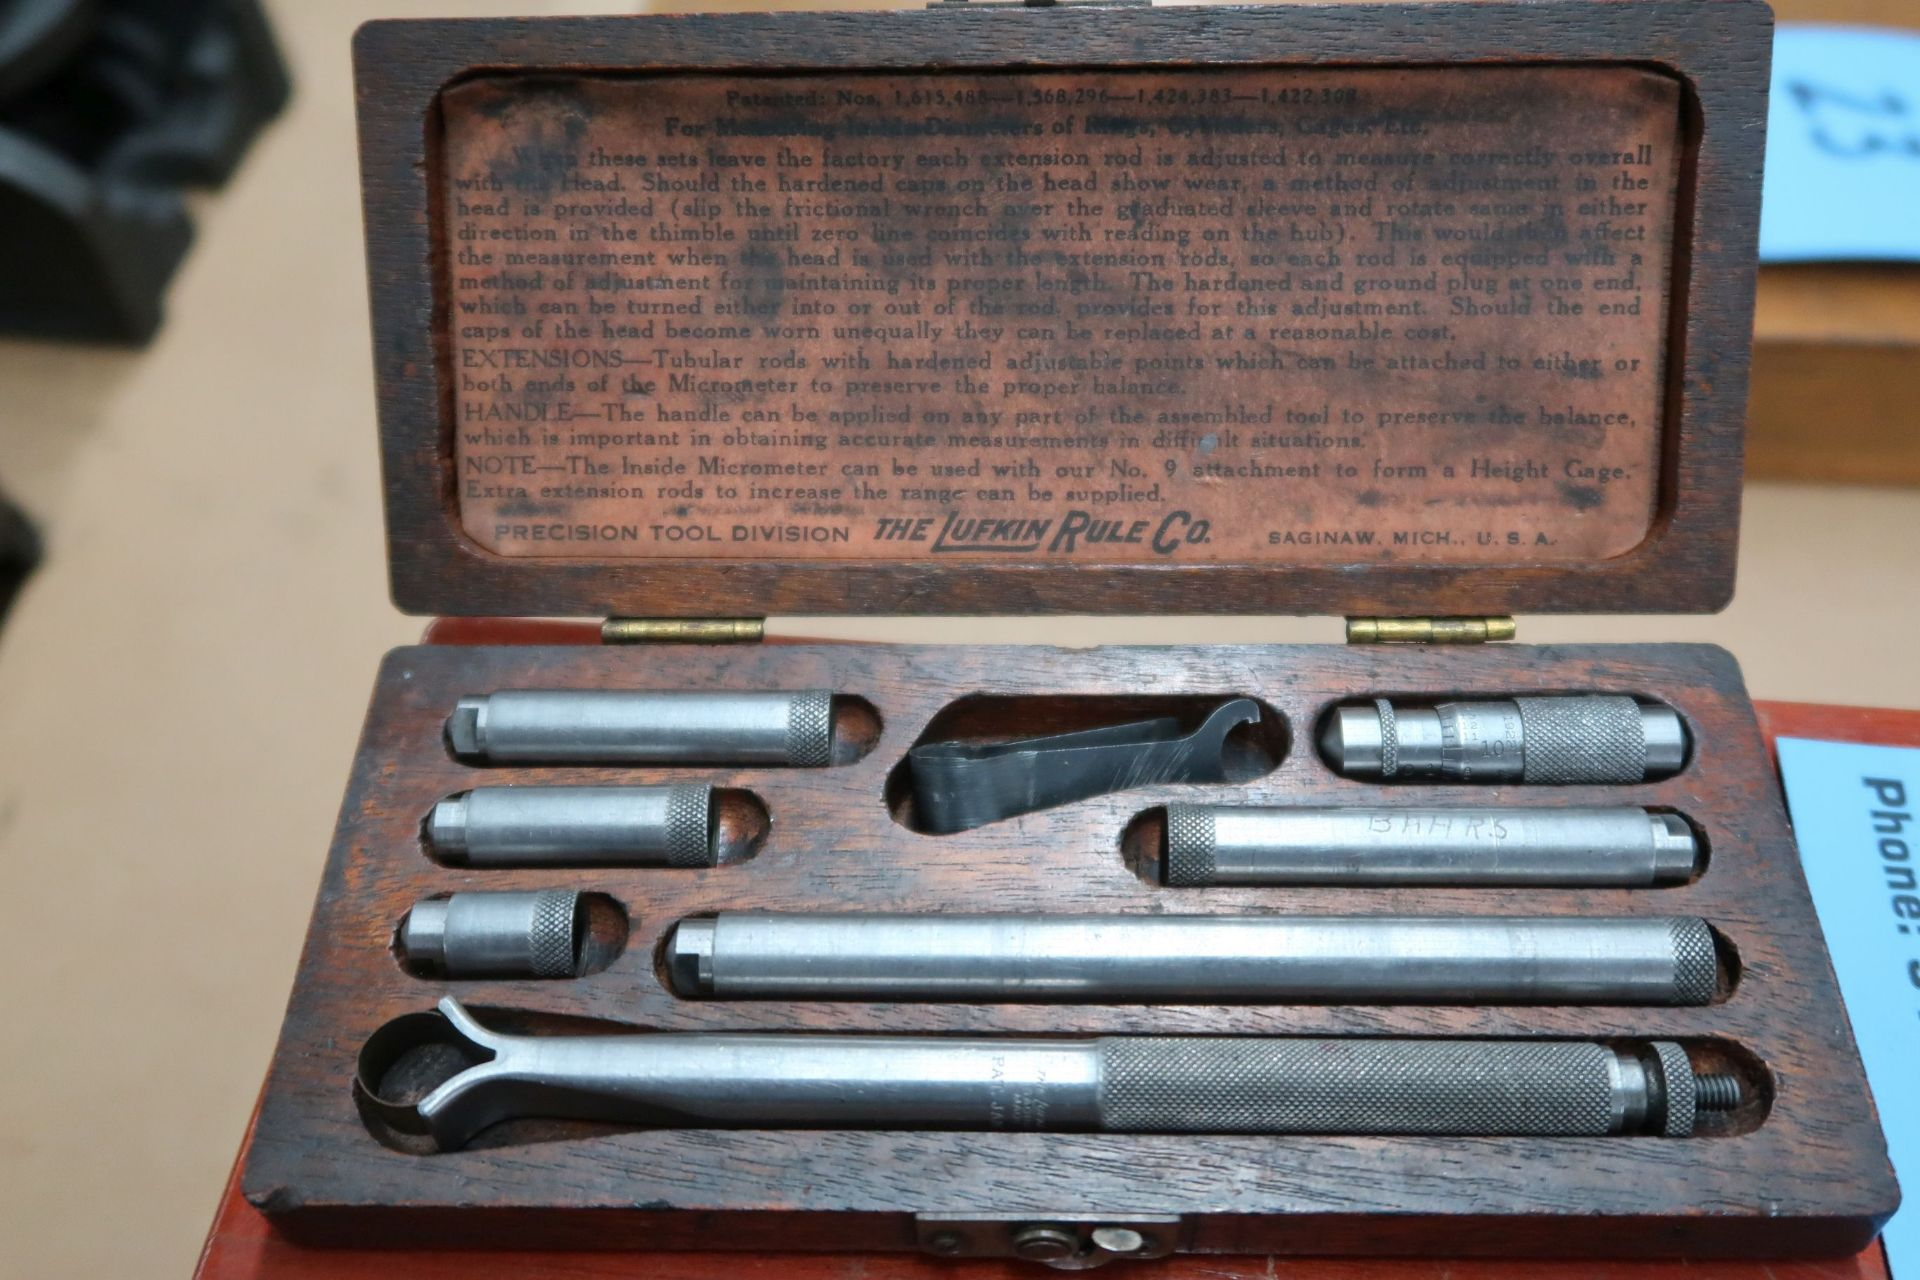 INSIDE MICROMETER SETS - Image 2 of 5